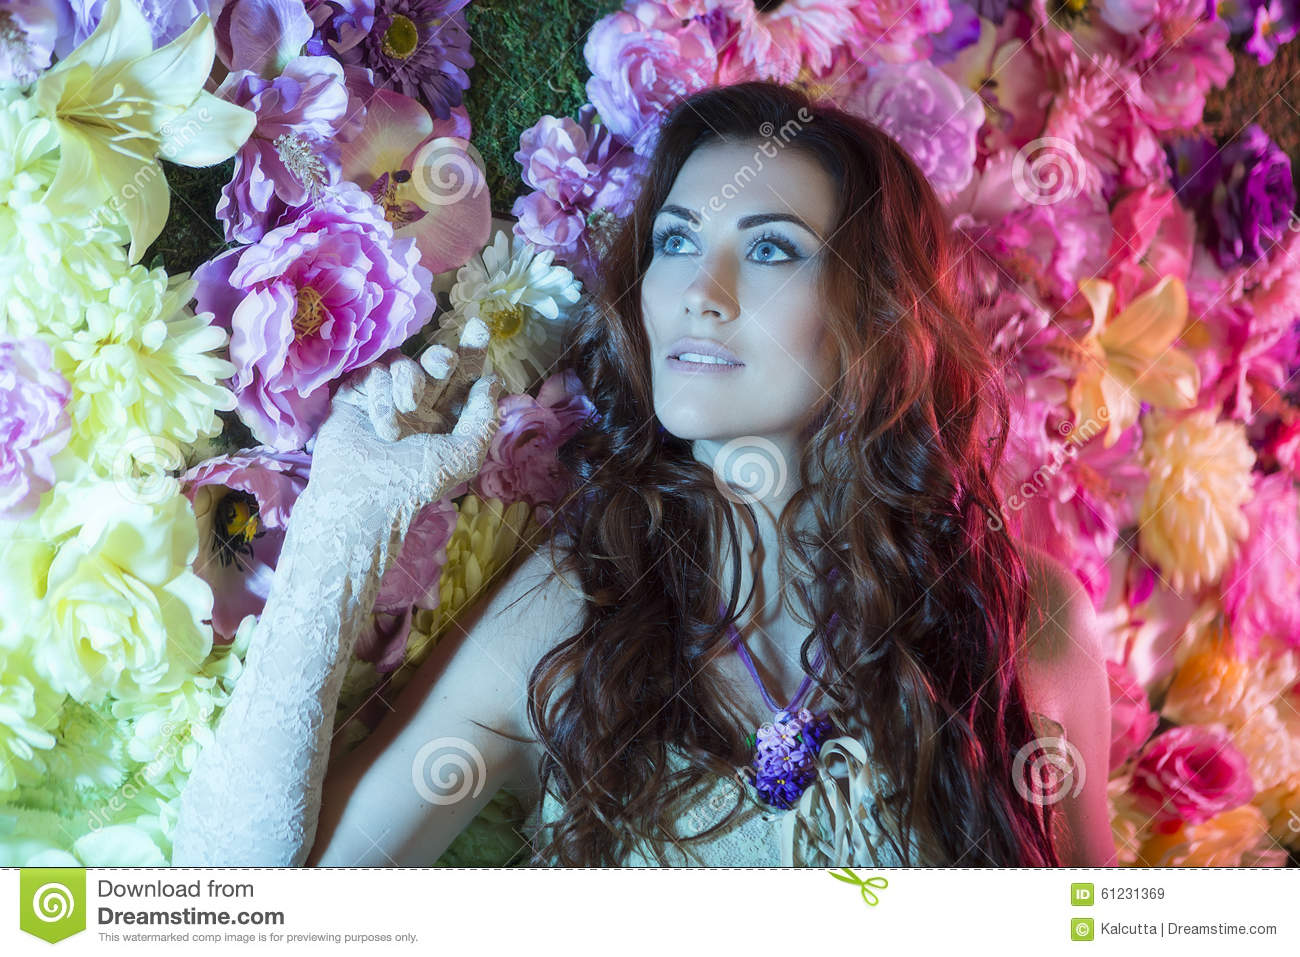 Beauty fashion women with flowers background summer and spring royalty free stock photo dhlflorist Gallery